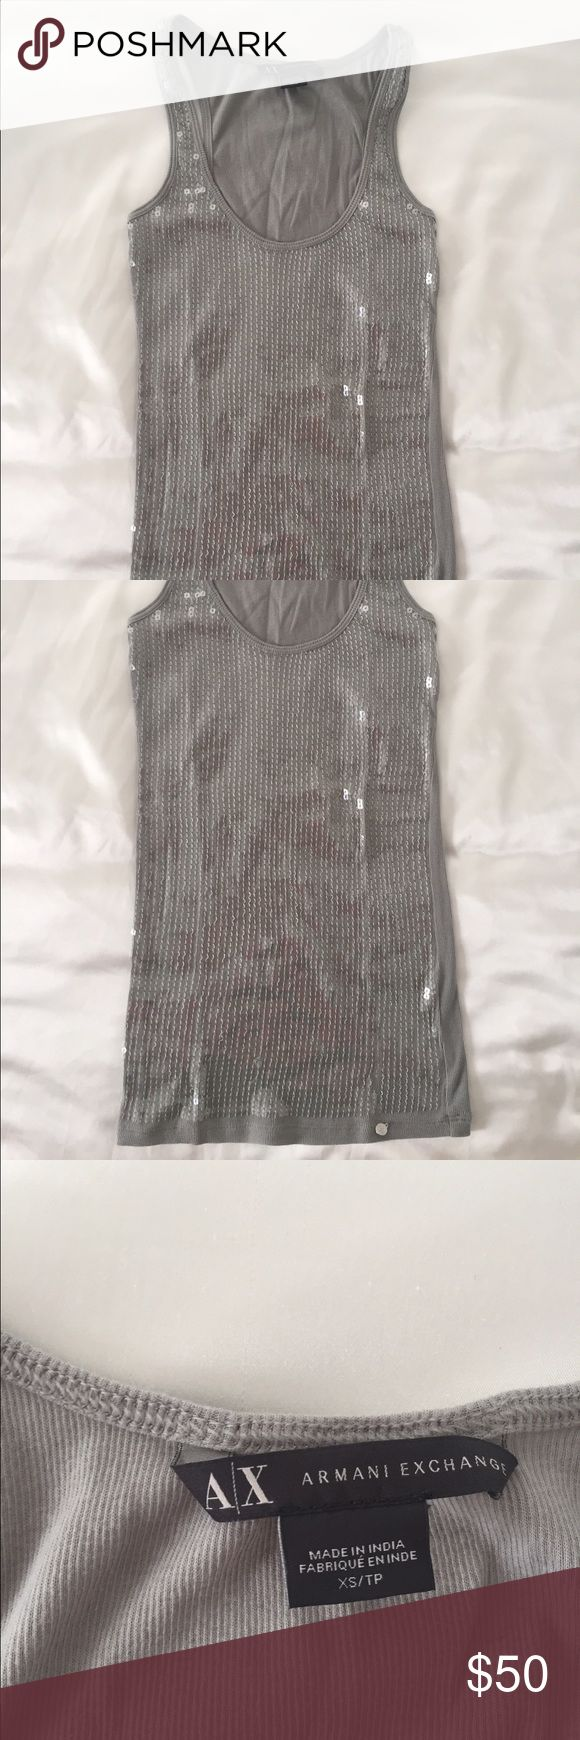 New Armani Exchange Top Slim fit Armani Exchange Tops Tank Tops